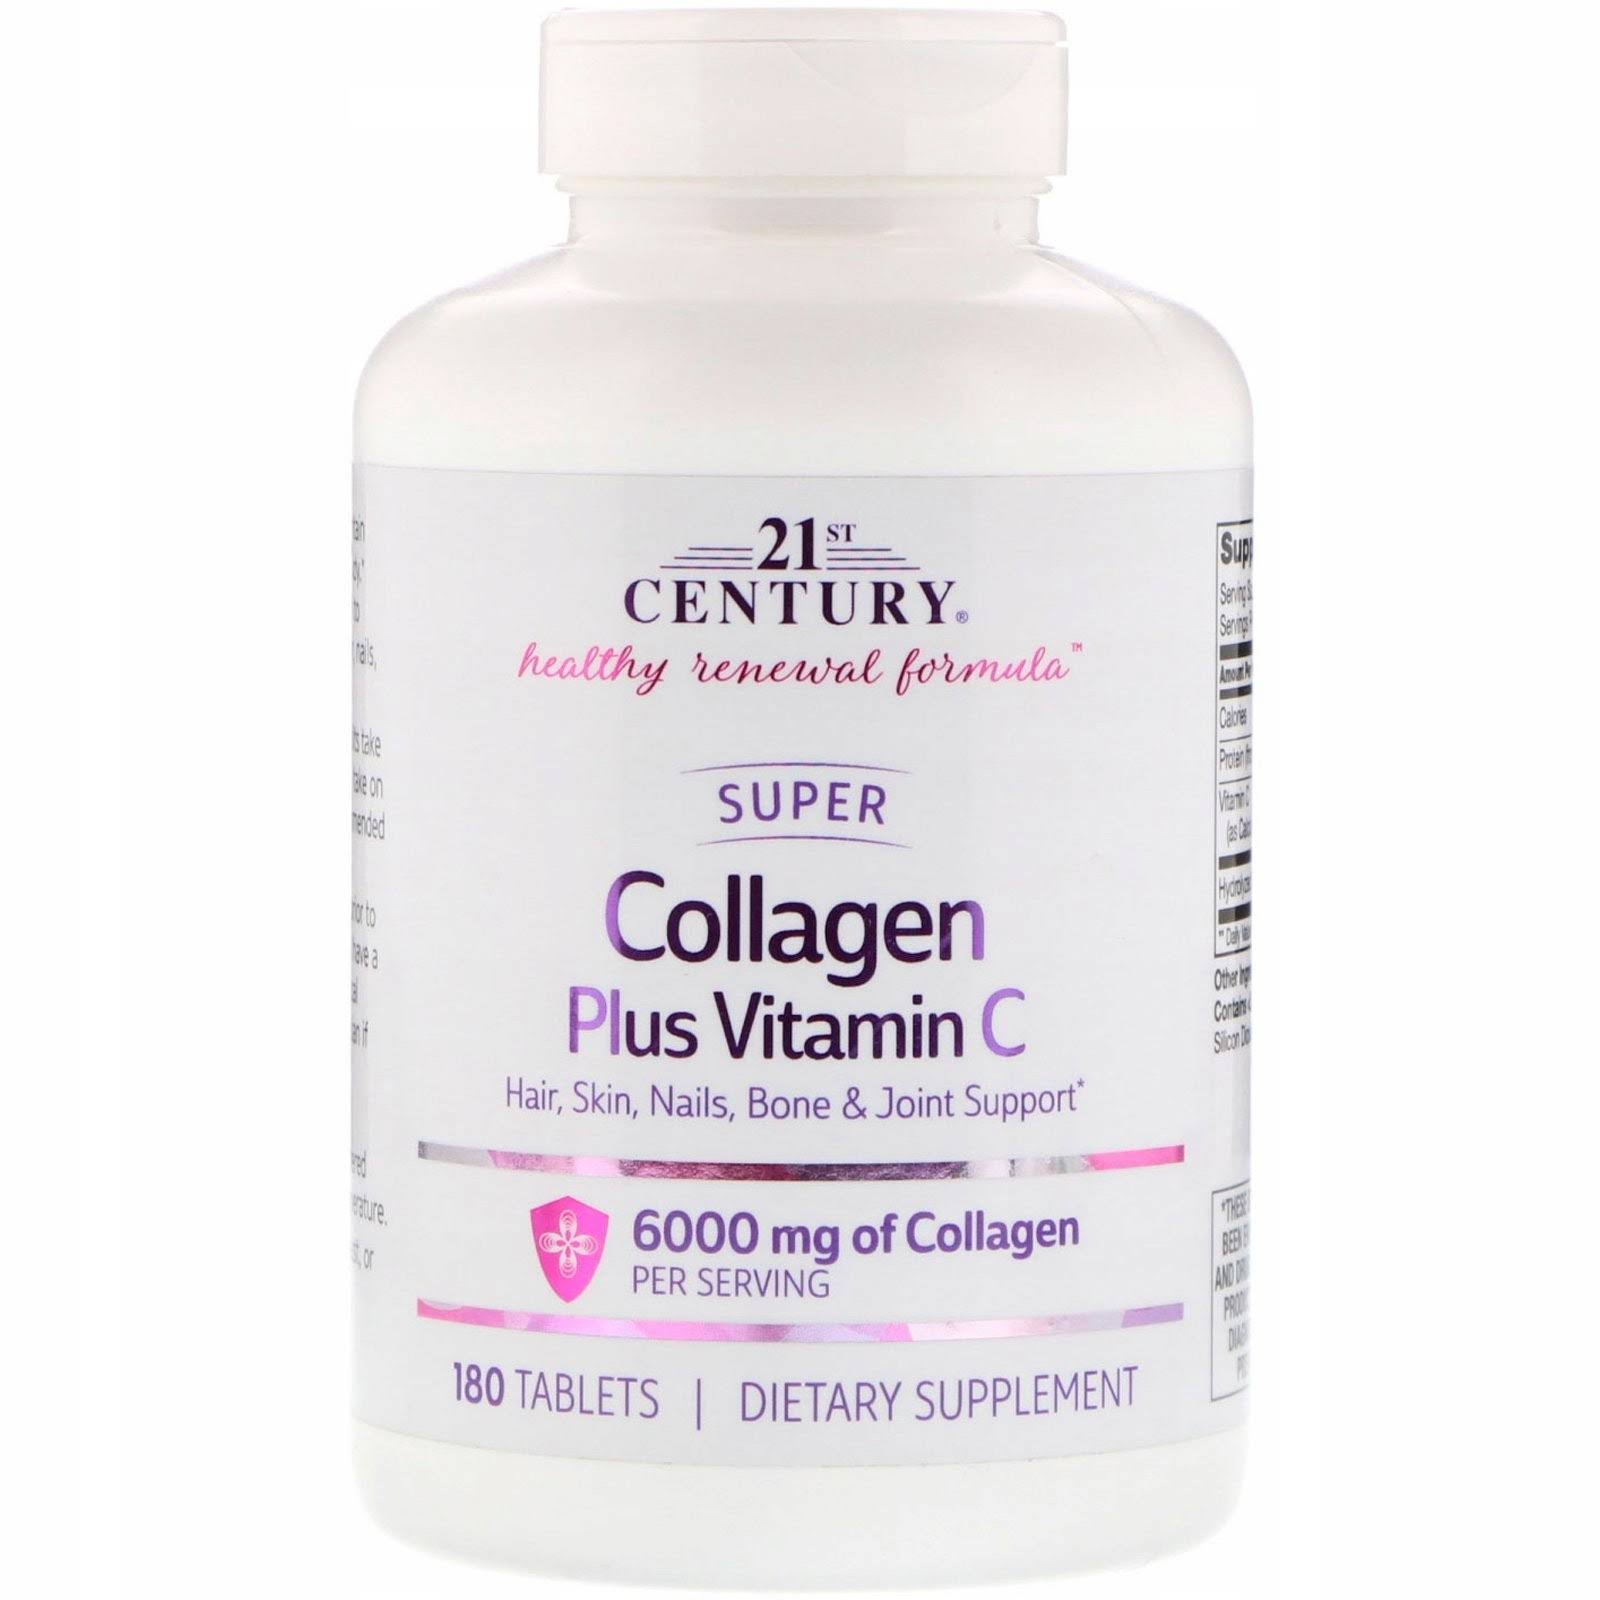 21st Century Super Collagen Plus Vitamin C 180 Tabs